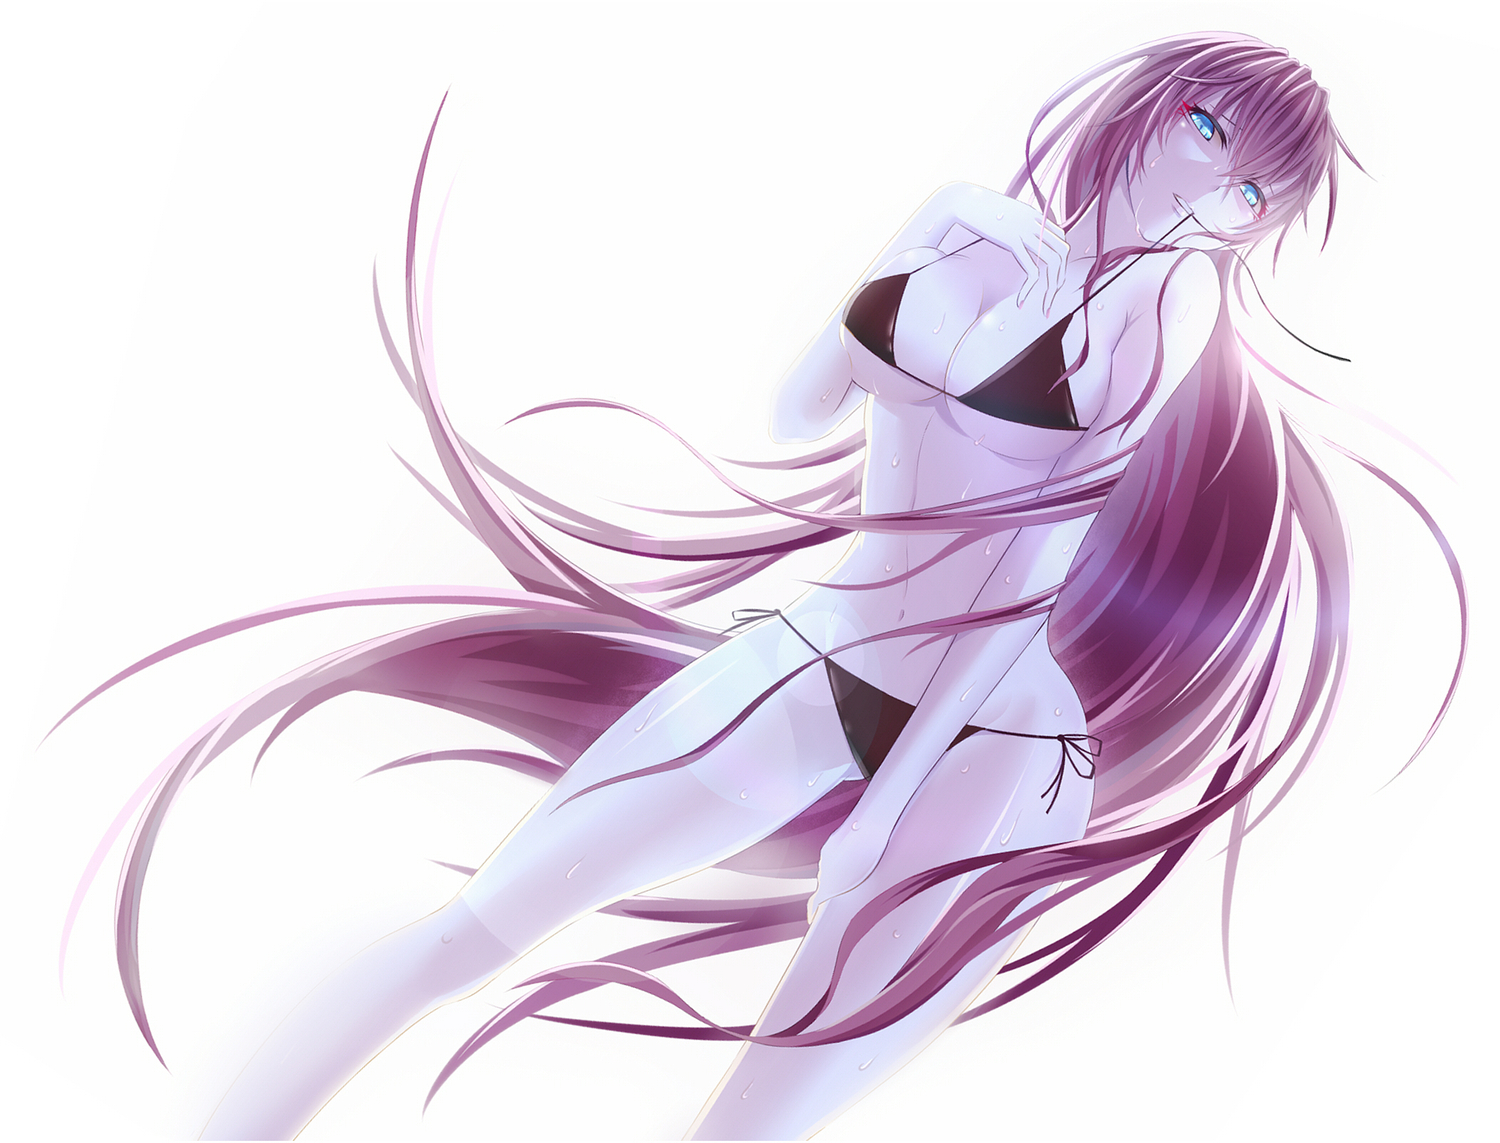 bikini long_hair megurine_luka paparins swimsuit vocaloid white